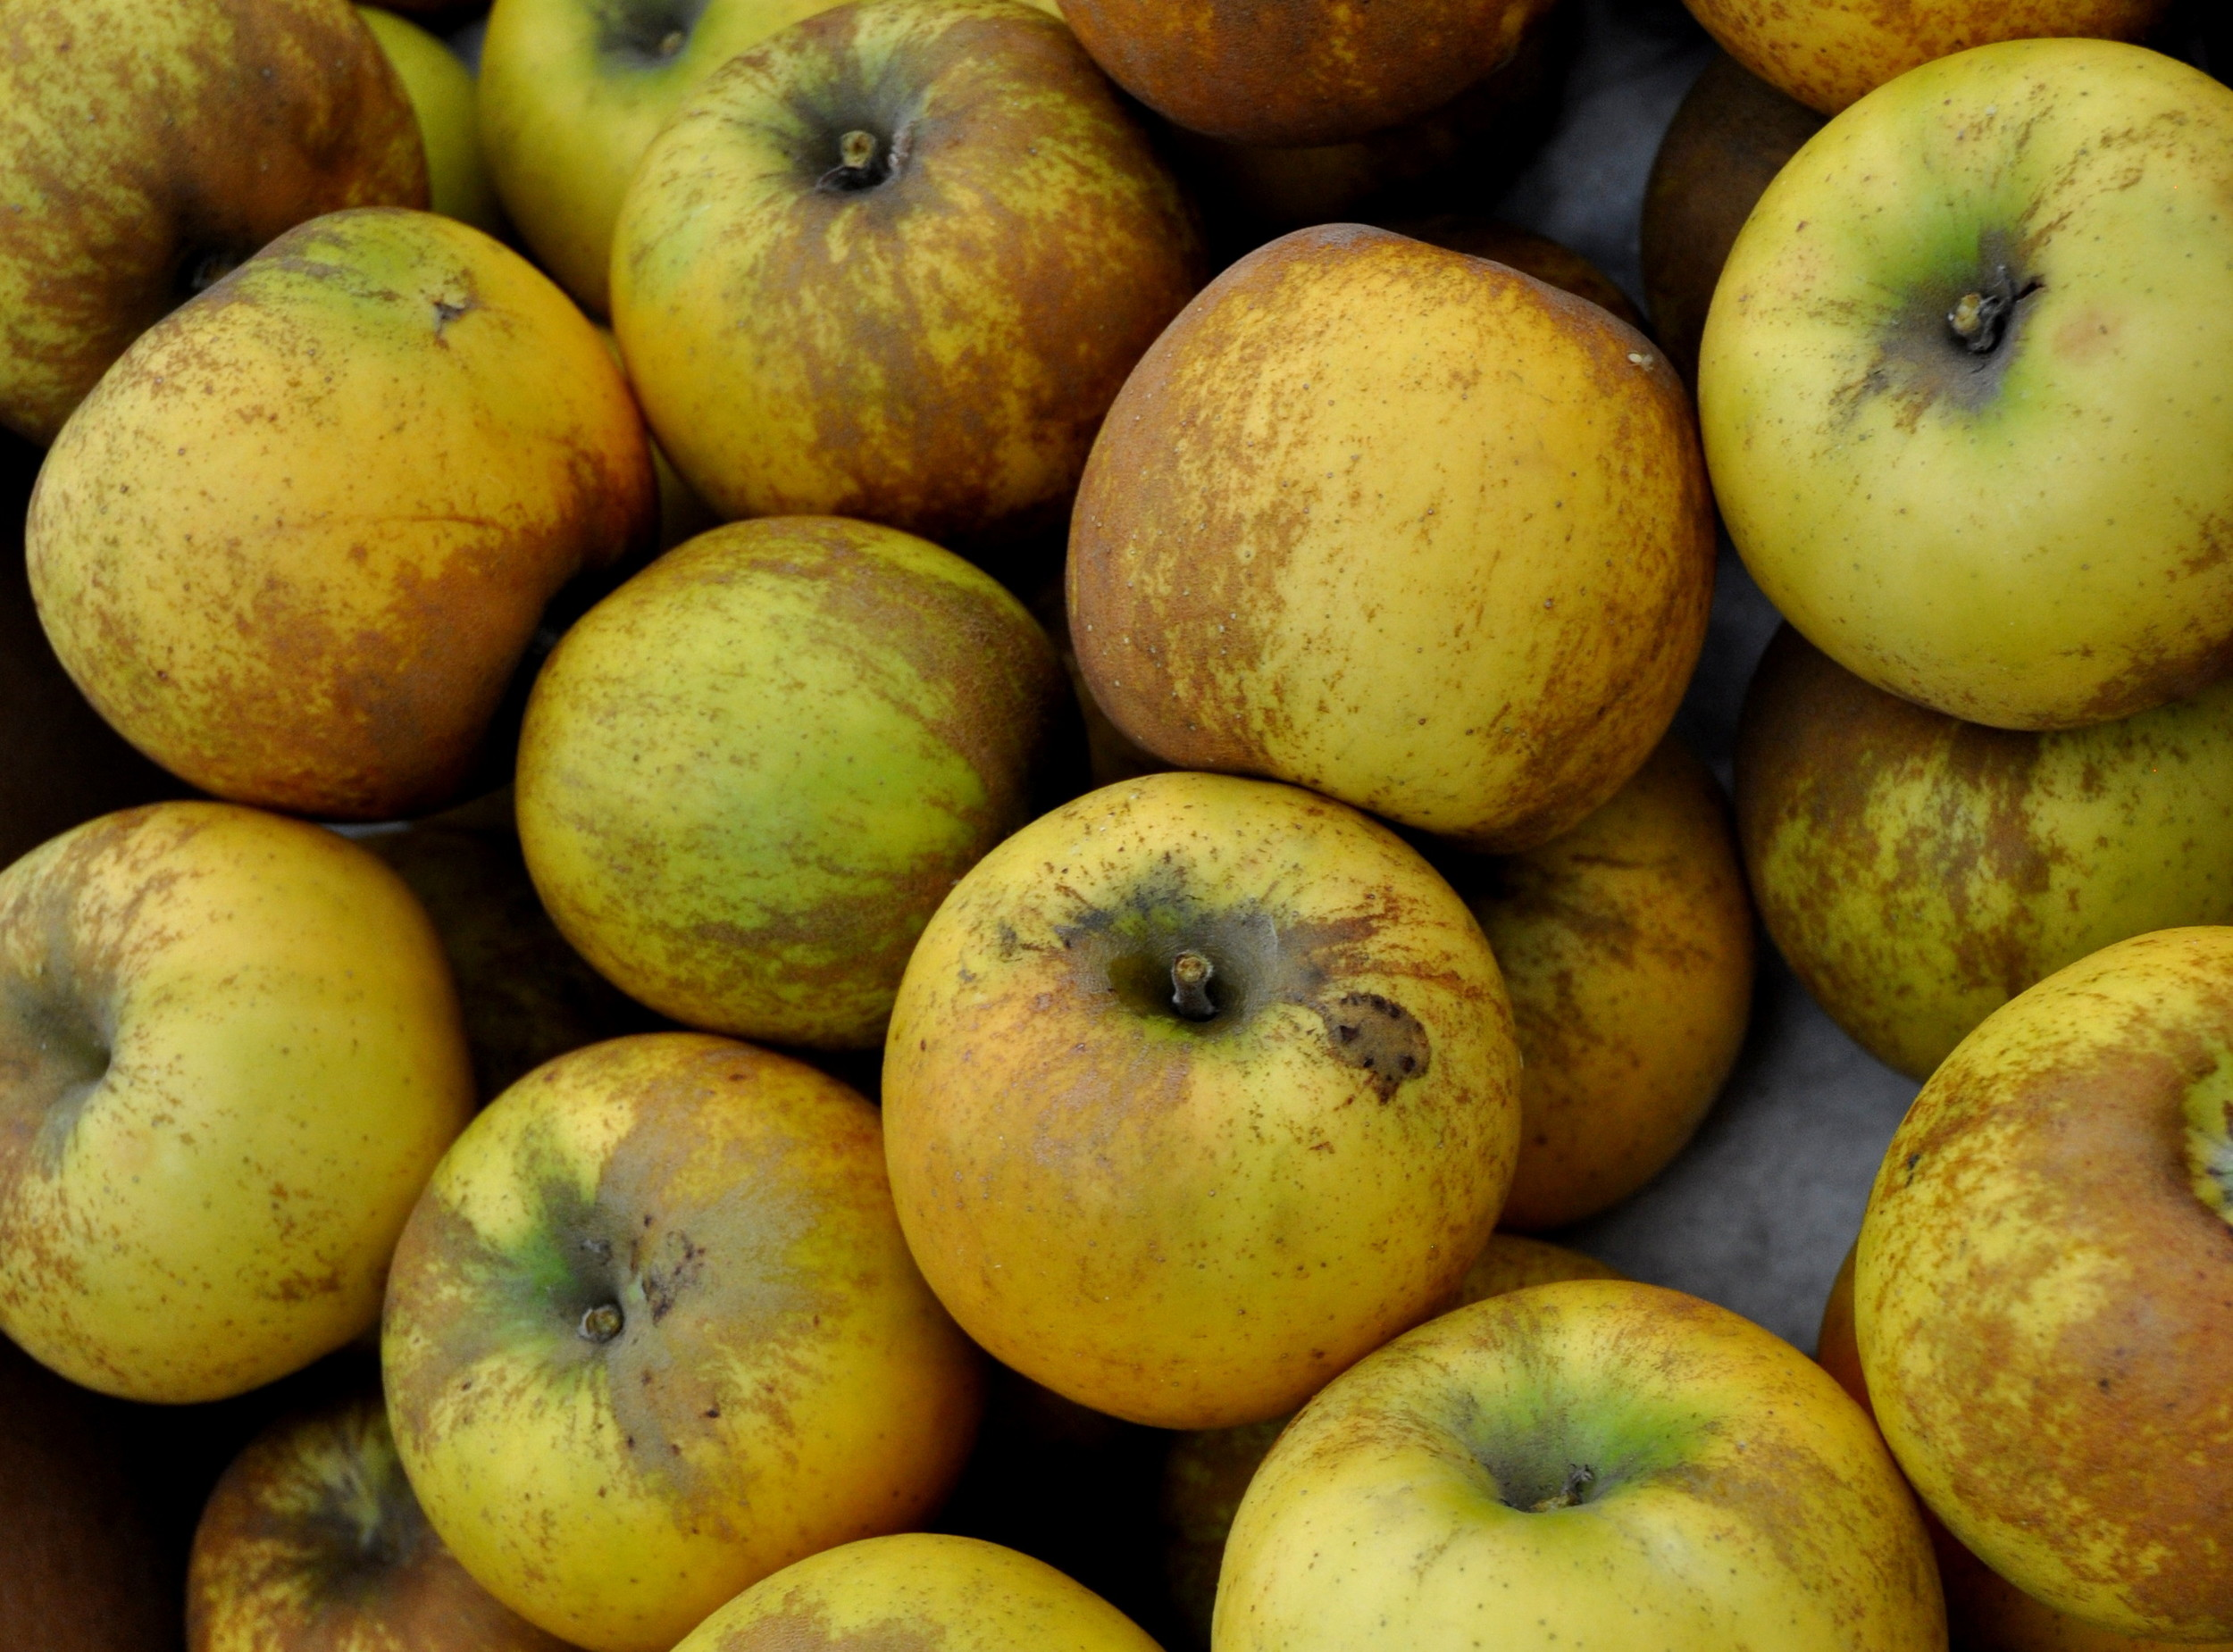 Golden Russet apples from Booth Canyon Orchard at Ballard Farmers Market. Copyright Zachary D. Lyons.